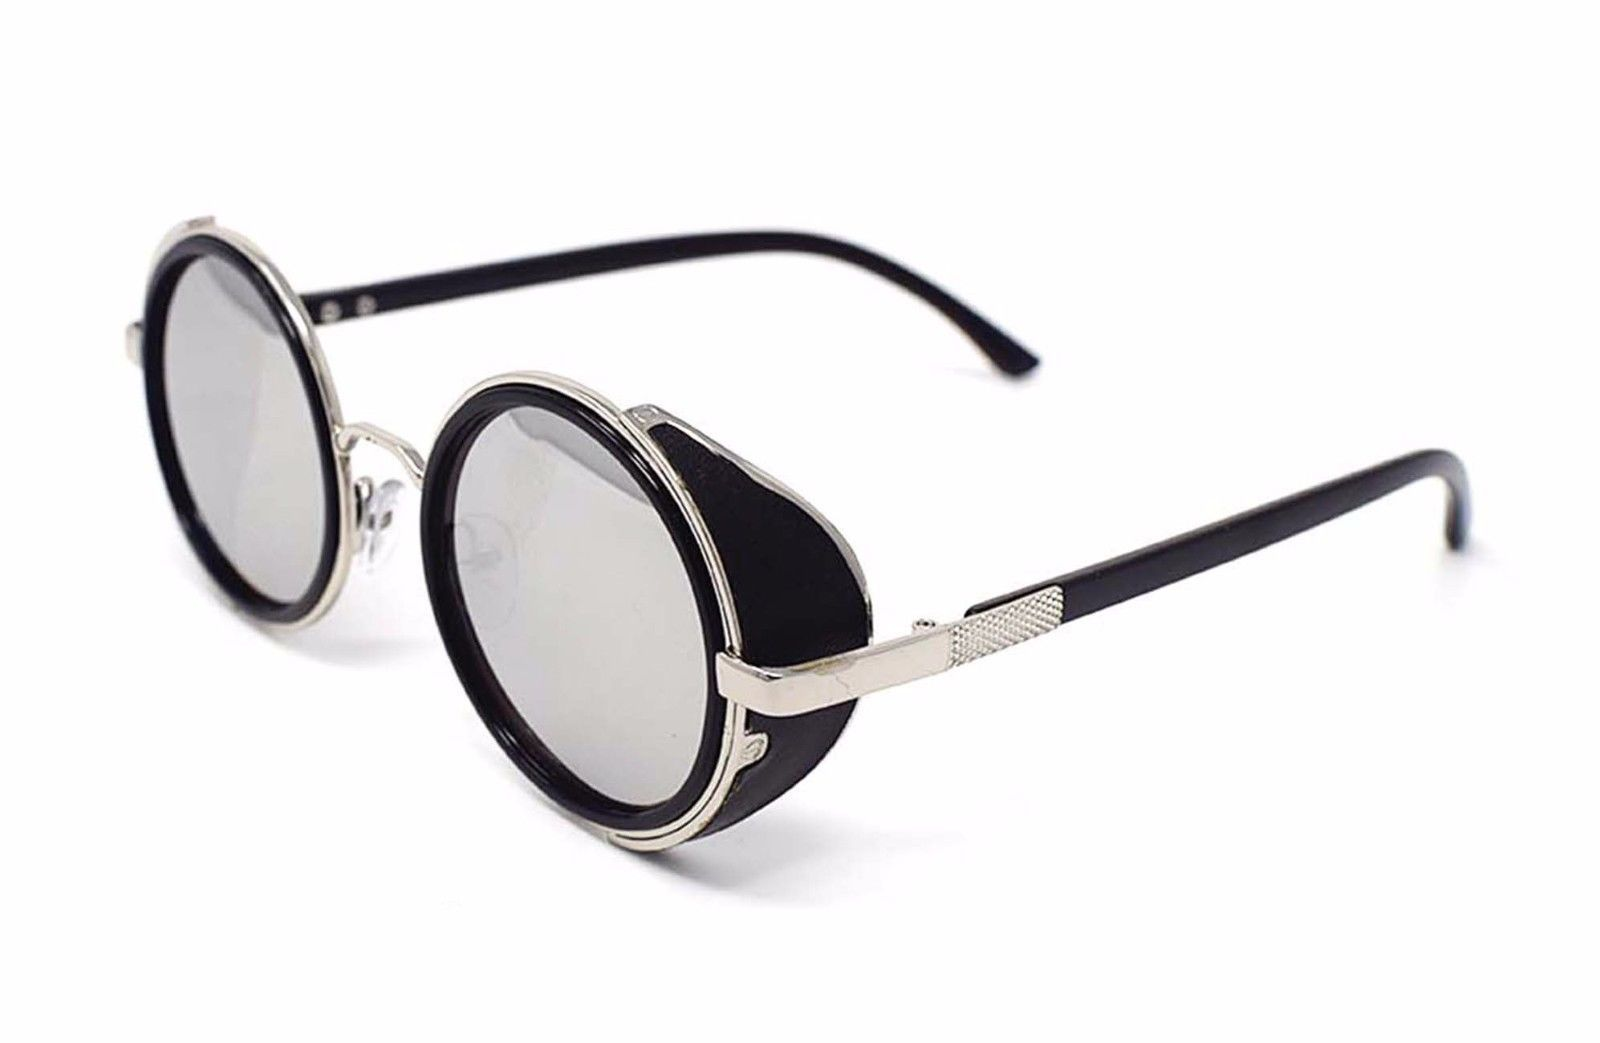 5a1a732fb143 Silver With Mirror Lenses Steampunk Sunglasses 50's Retro Vintage Style  Blinders